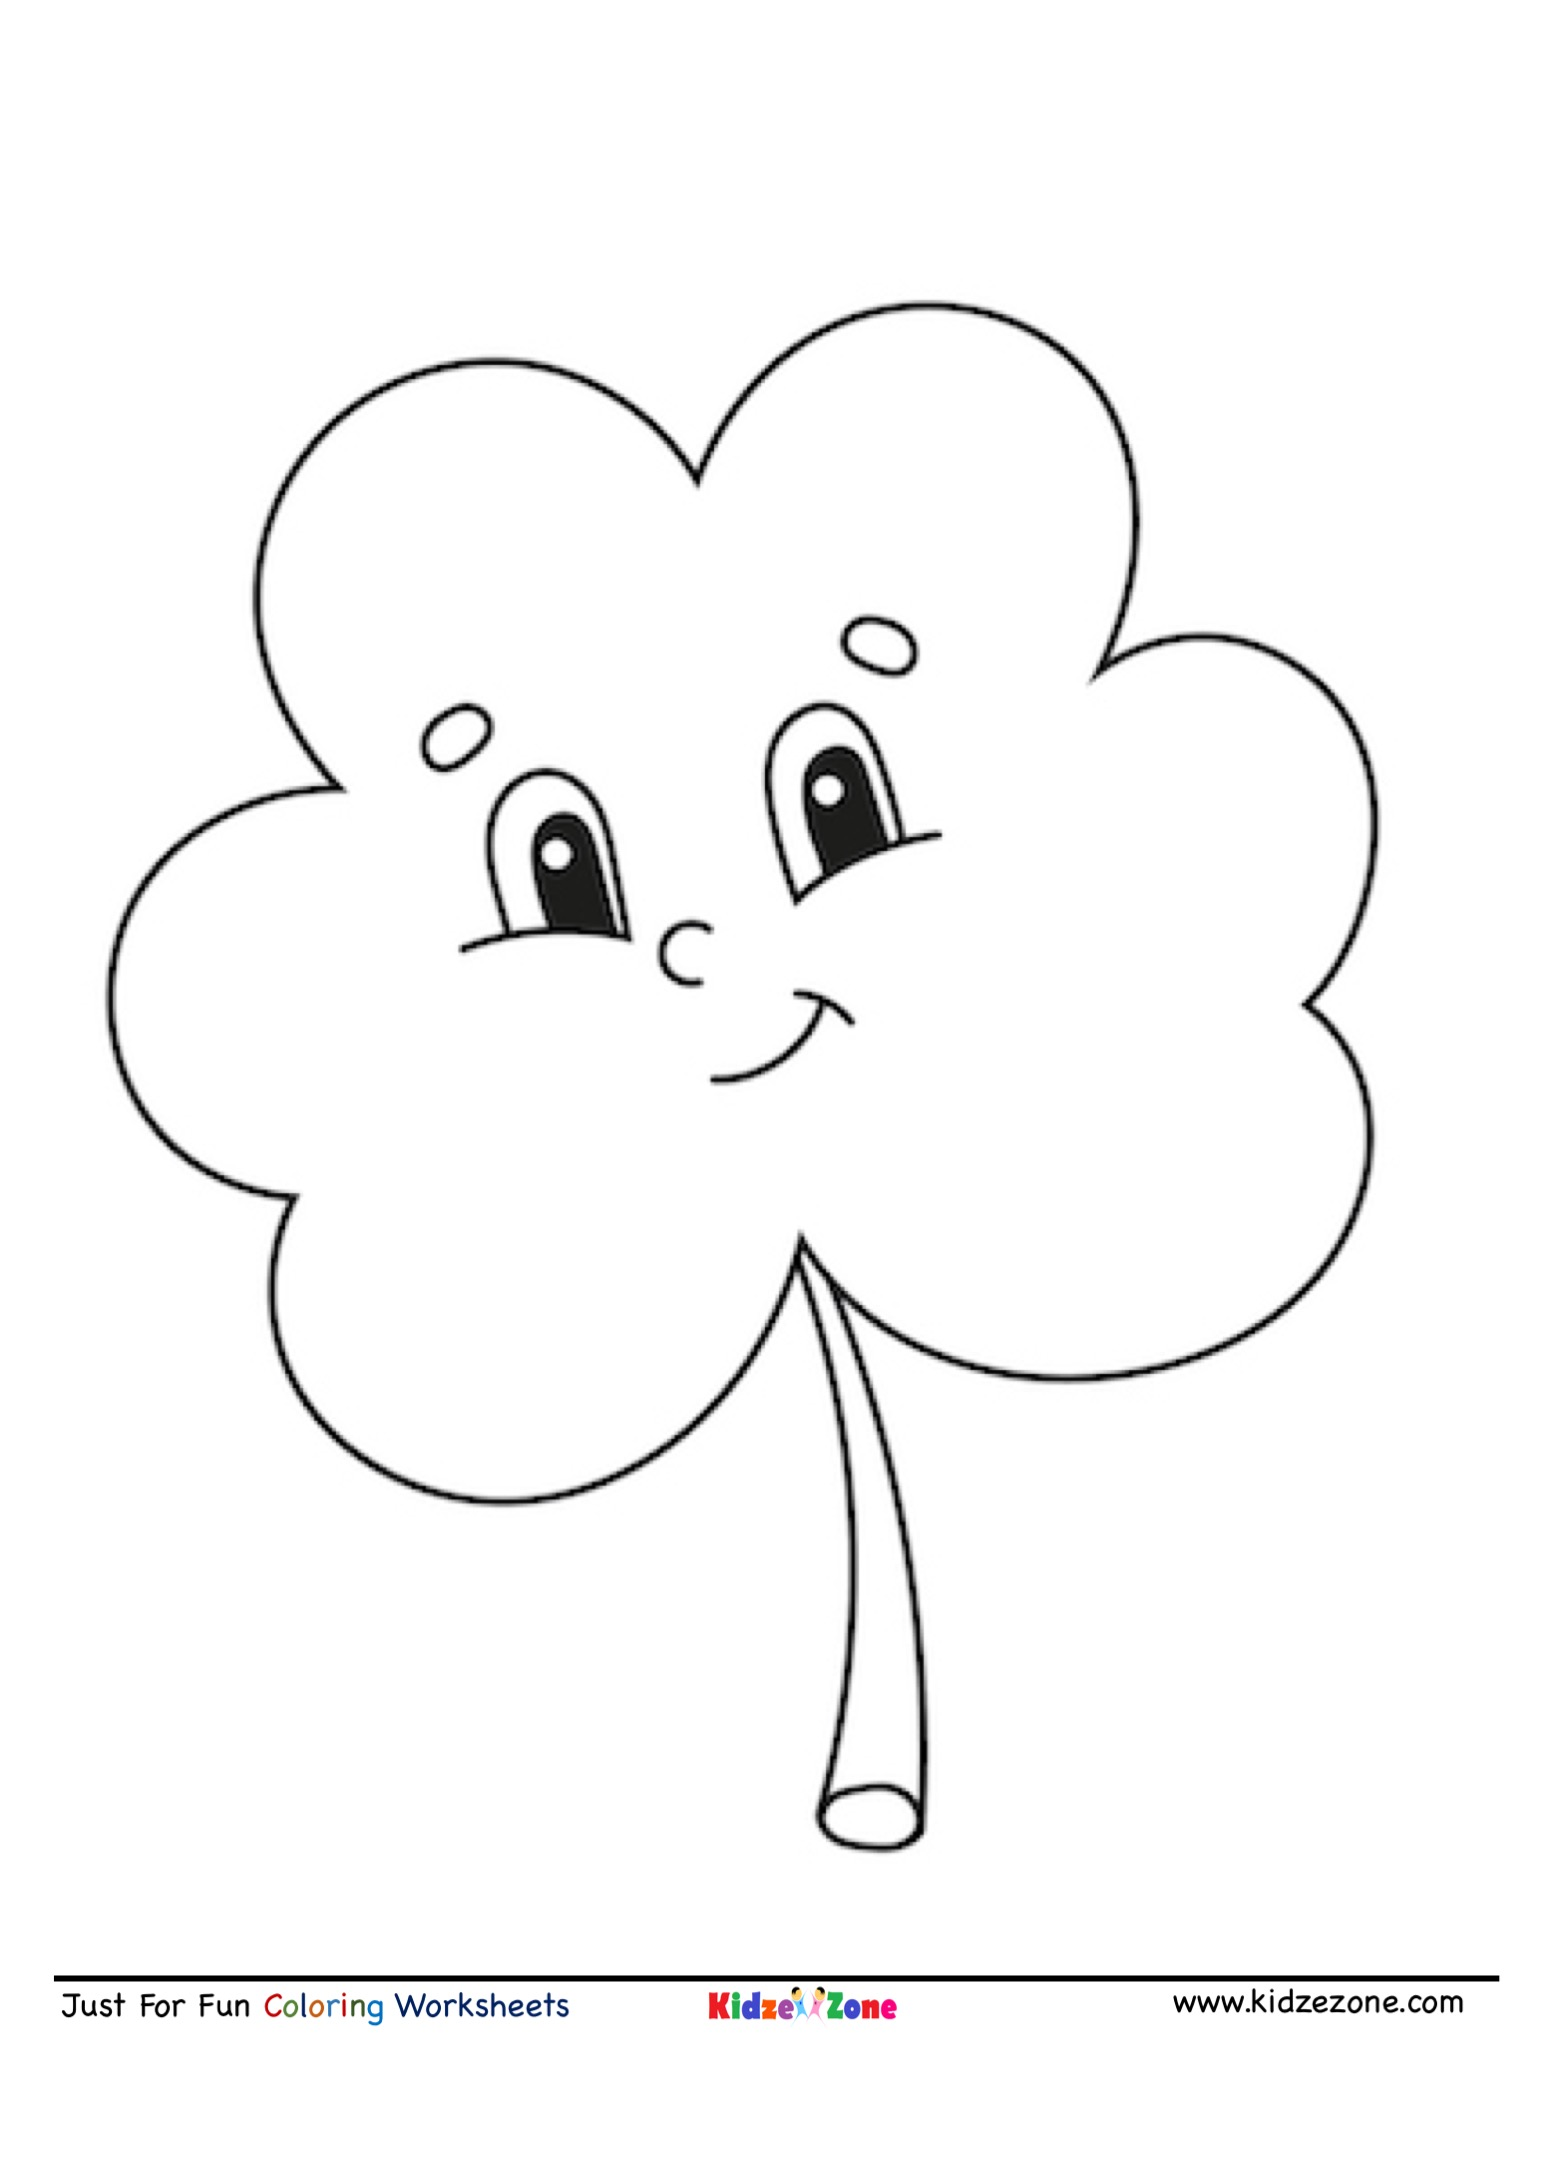 Leaf Cartoon Coloring Page